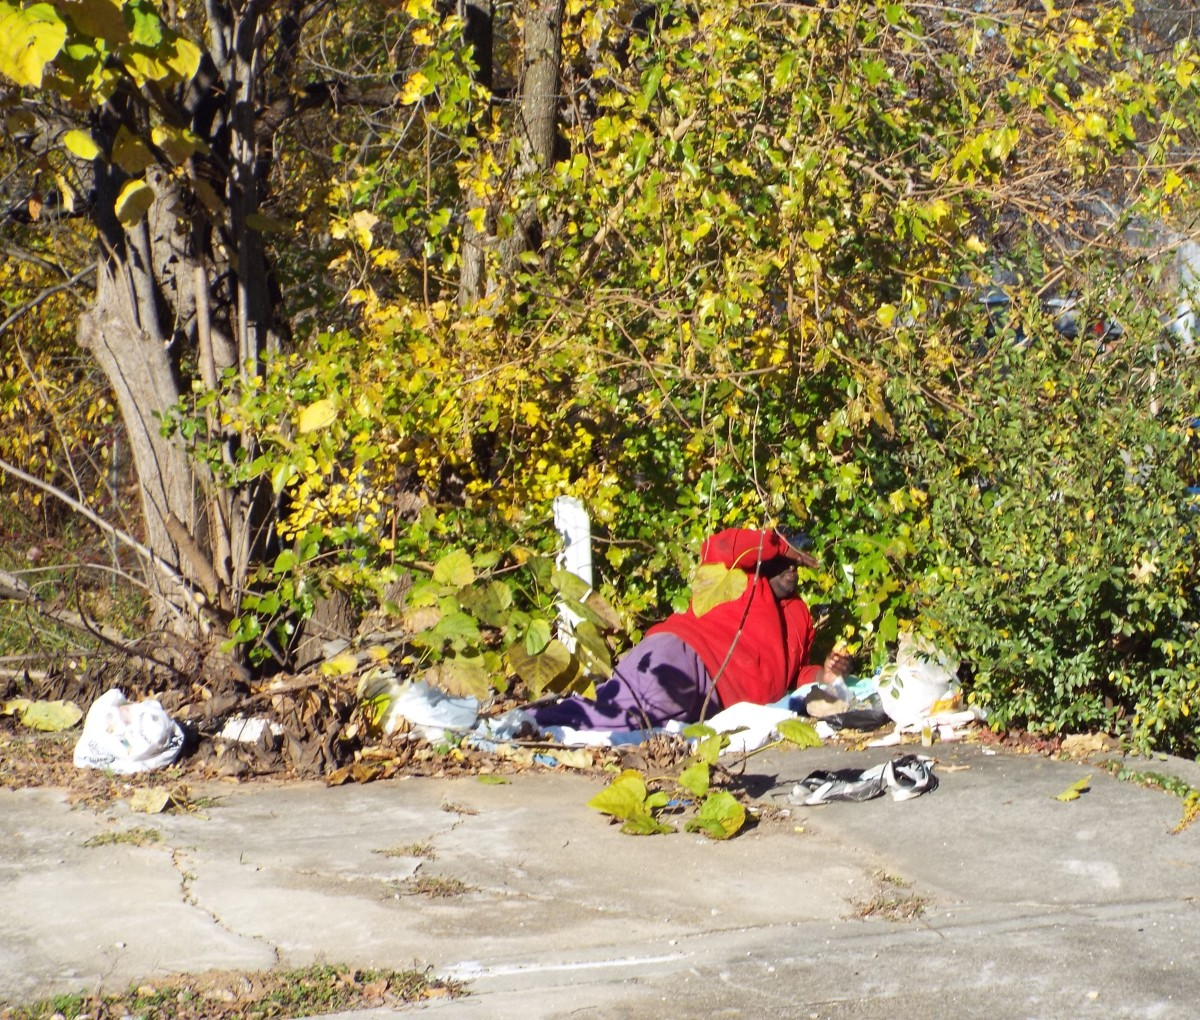 Just One Picture of Homelessness